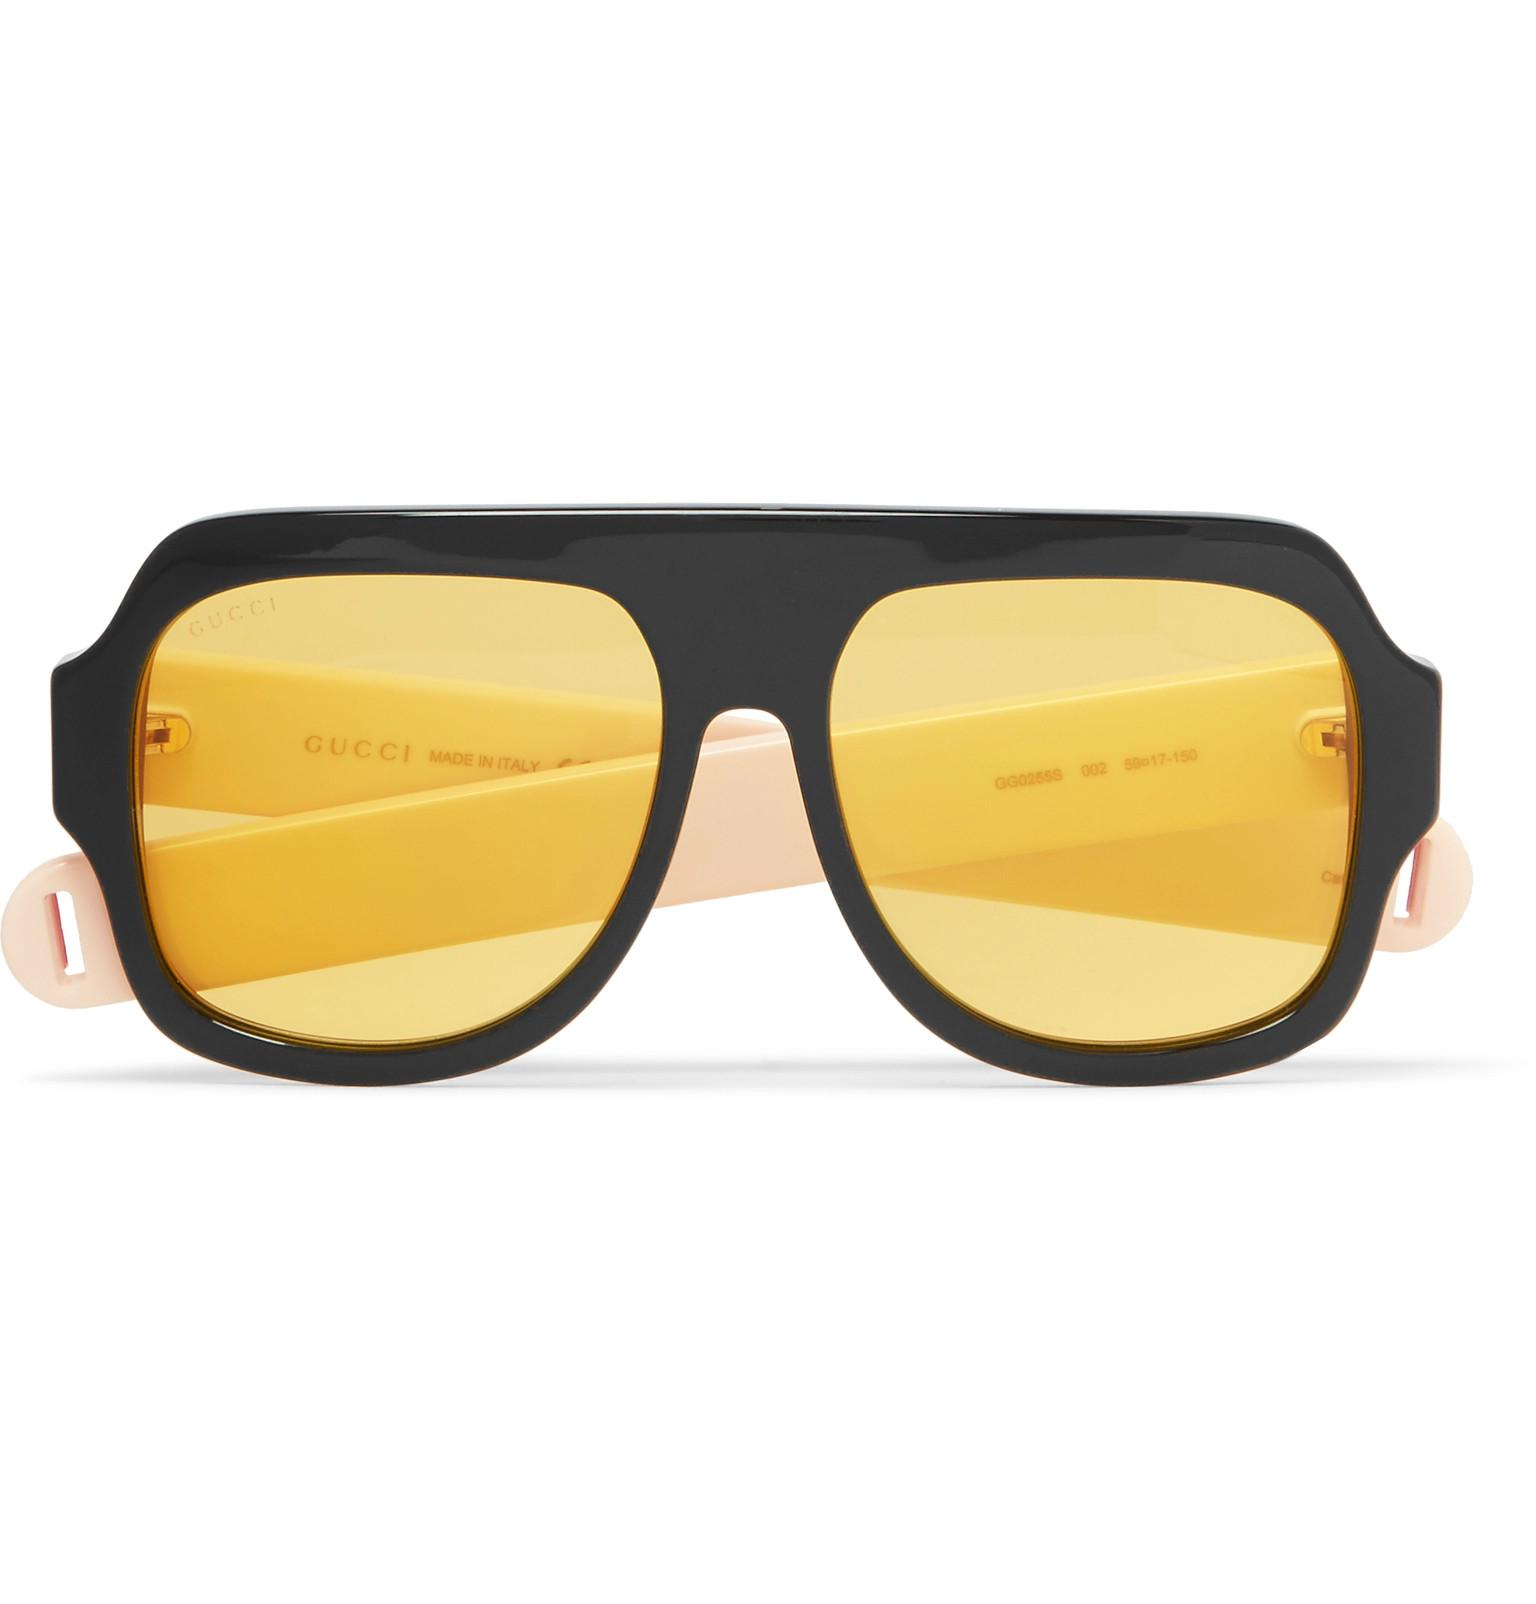 8d15c46c677 Gucci Oversized Square Frame Aviator Style Metal Sunglasses « One ...